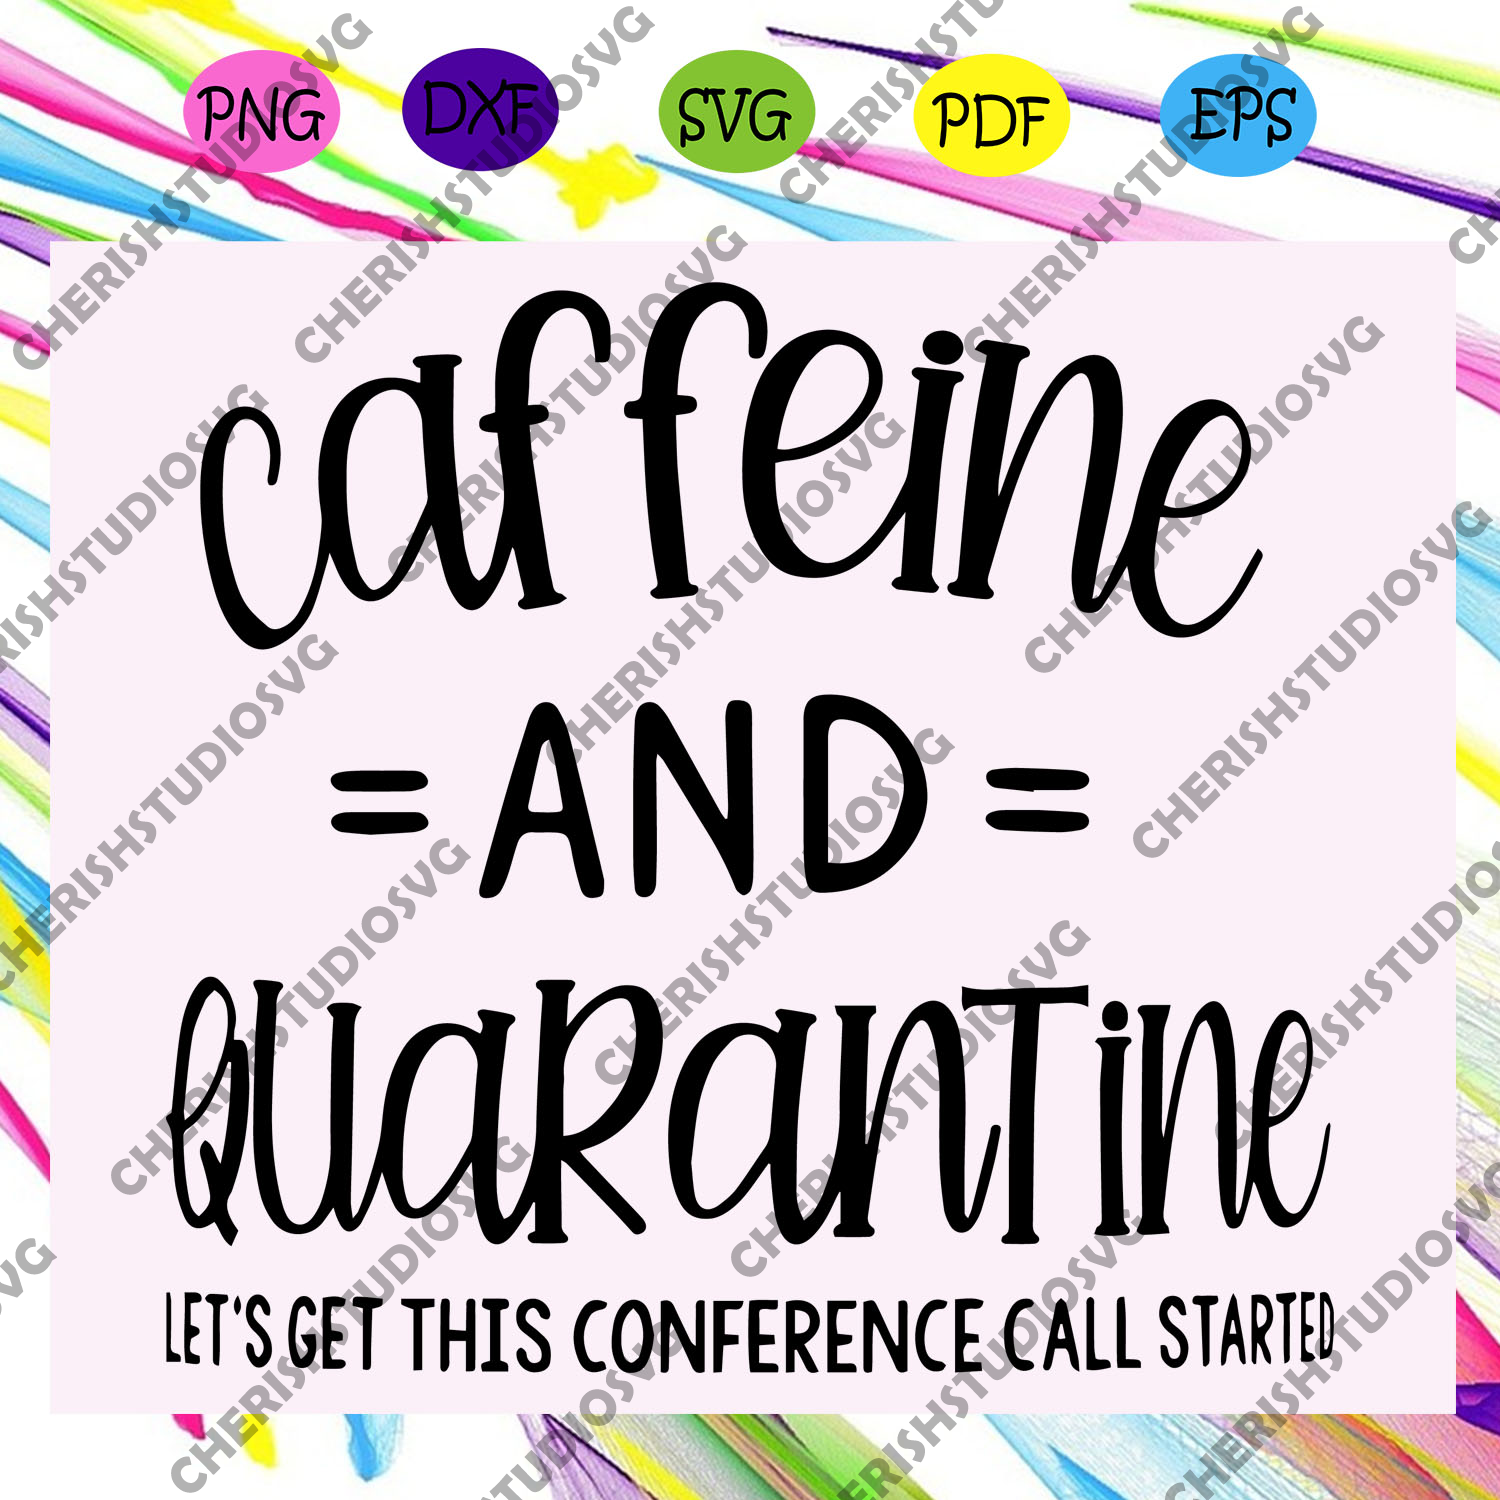 Caffeine and quarantine svg, caffeine svg, quarantine svg, quarantine succs without tea, coffee svg, coffee lover svg, gift for coffee lover, social distance, Files For Silhouette, Files For Cricut, SVG, DXF, EPS, PNG, Instant Download